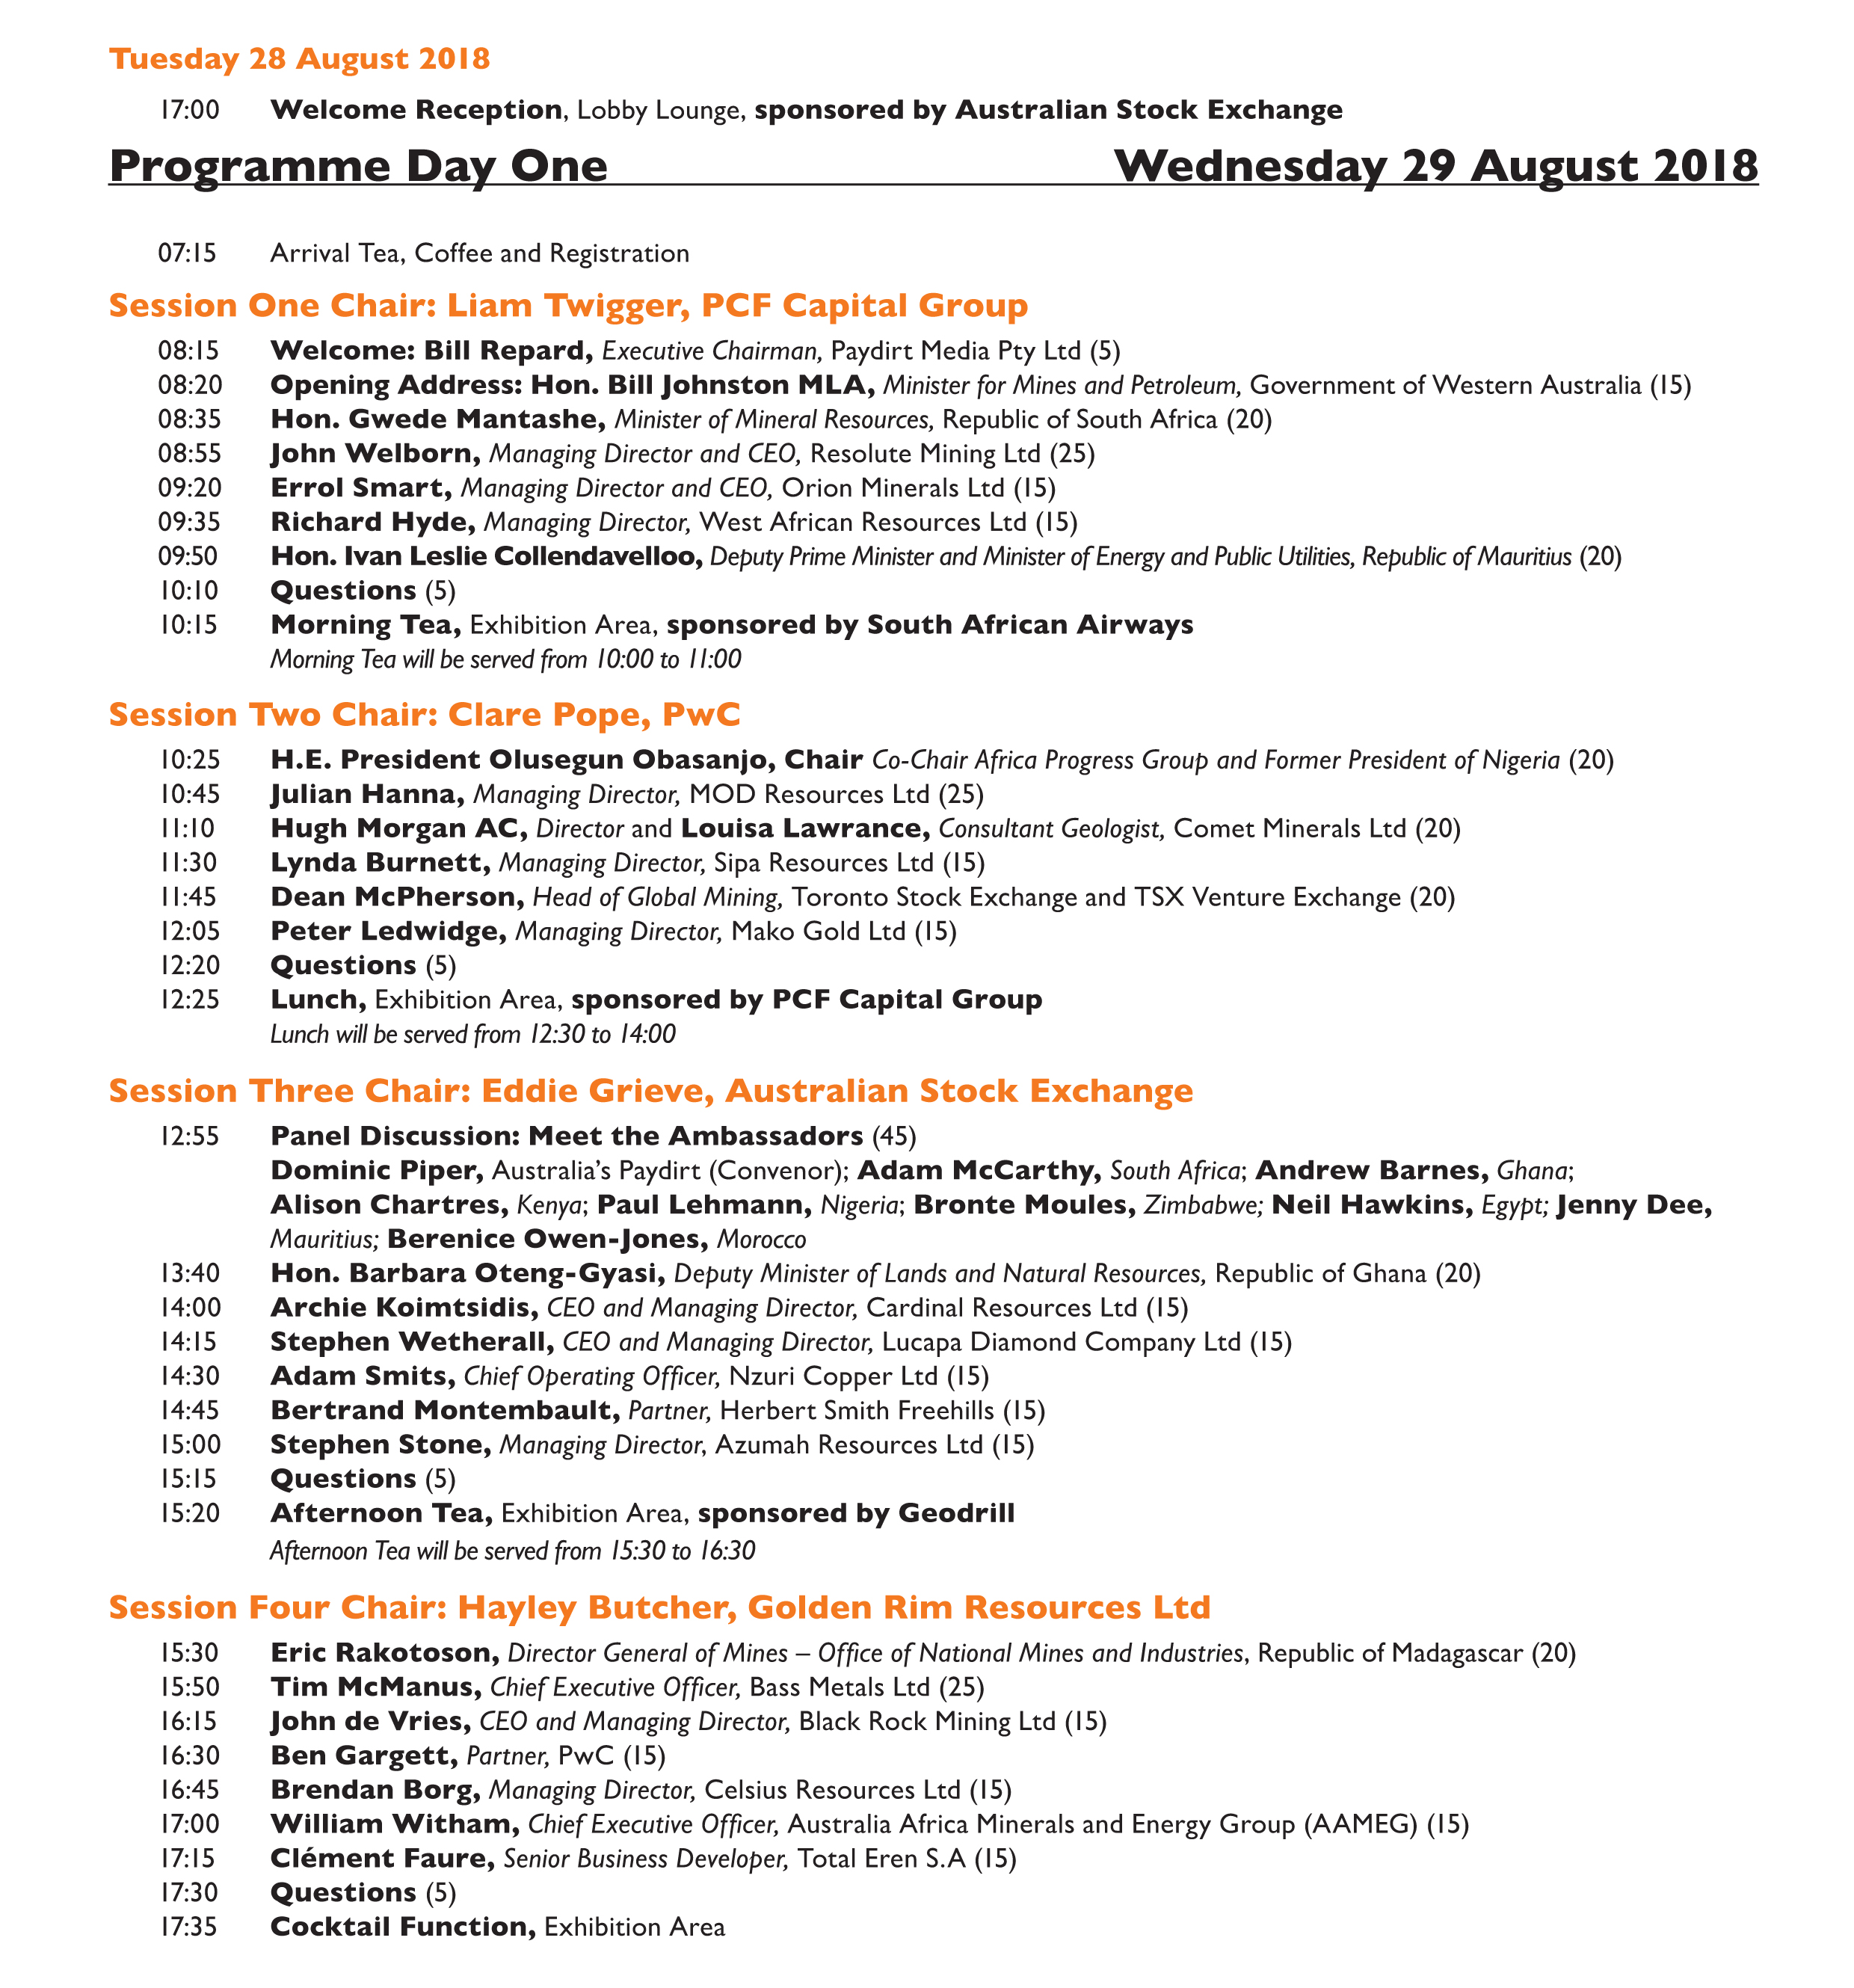 2018 Conference Programme - Africa Down Under